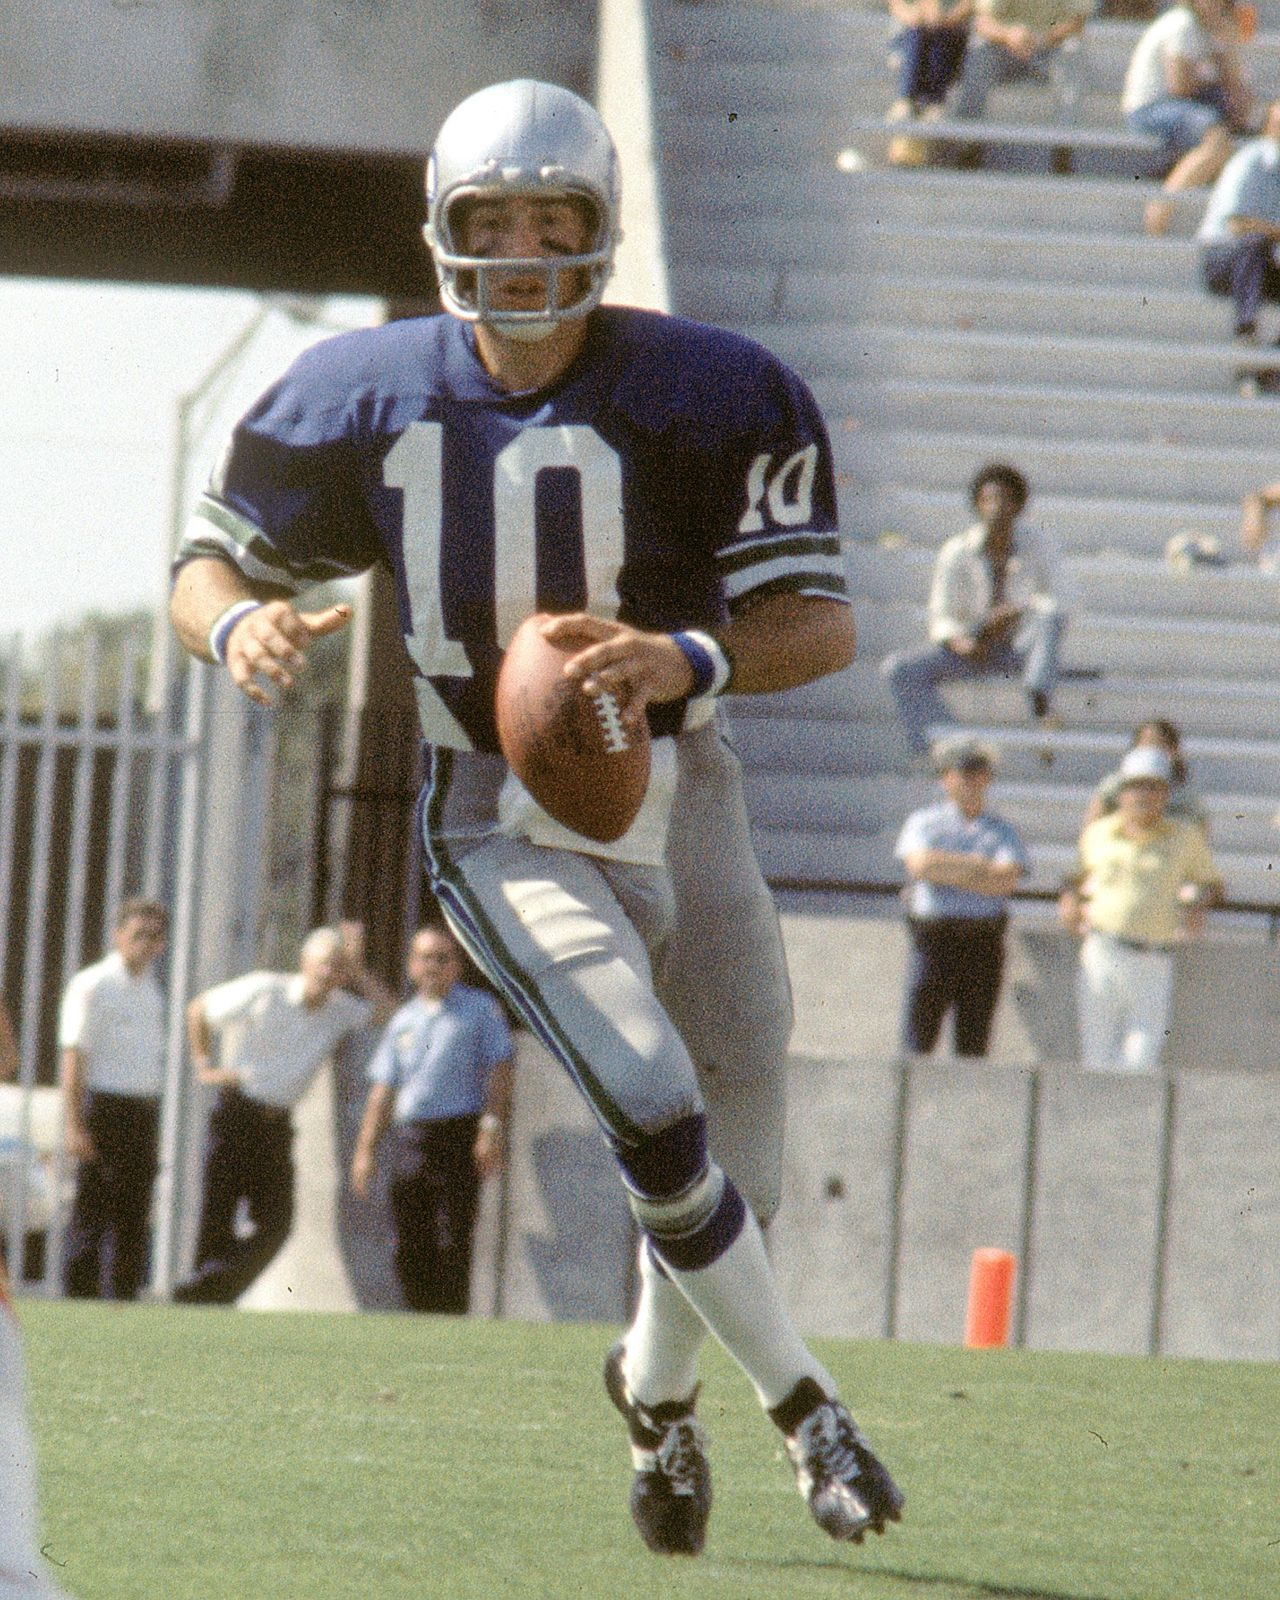 Seahawks Uniform History – 1976 to Present